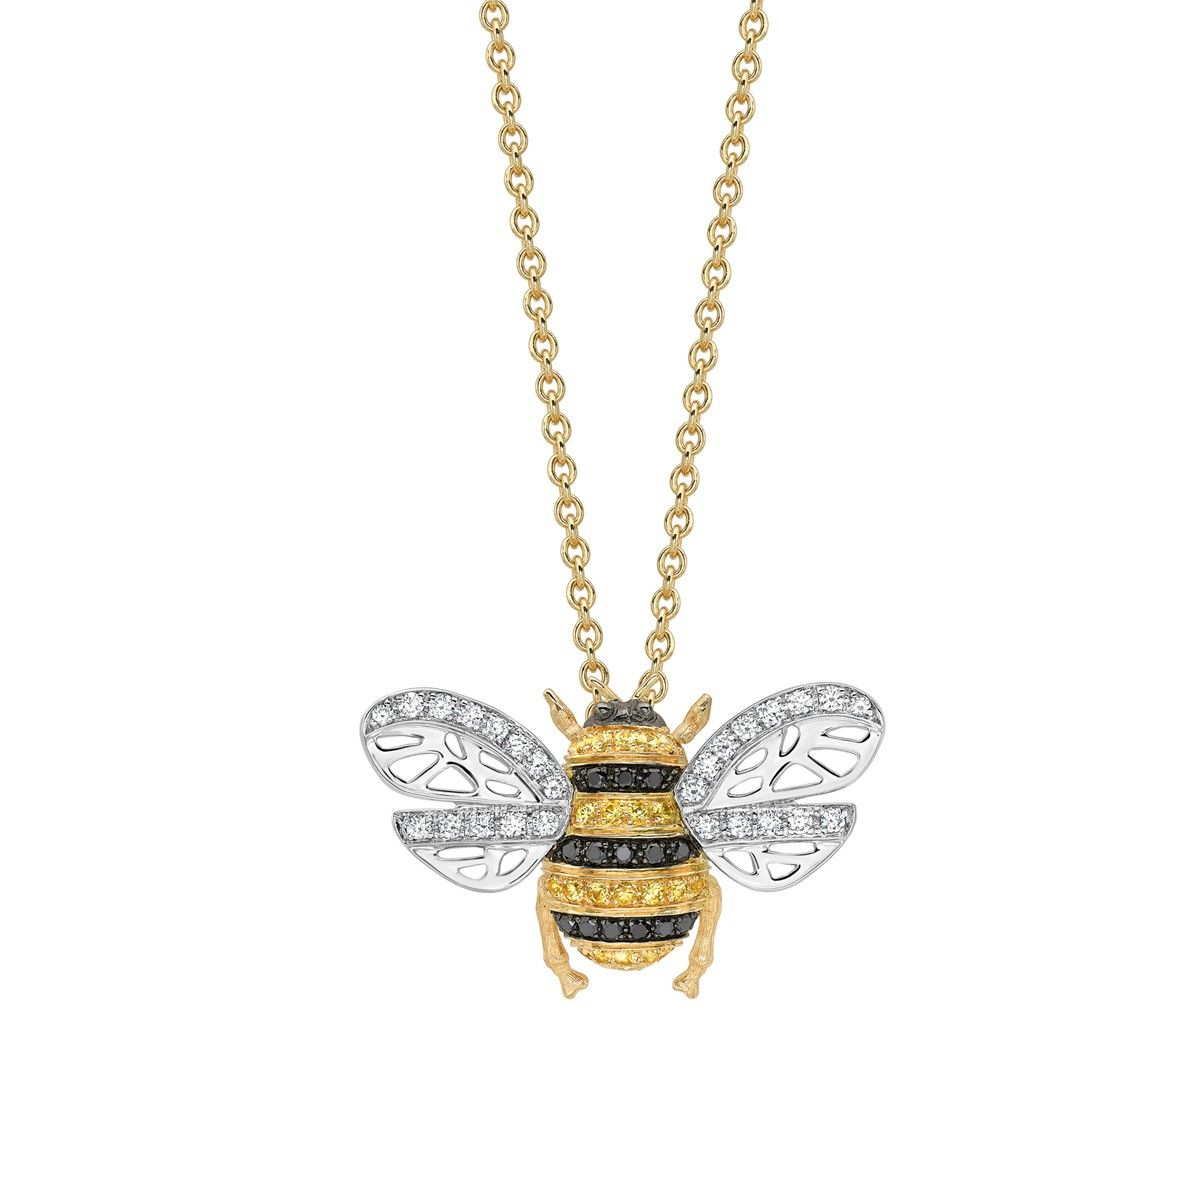 7b2d8247208ce Black Diamond & Yellow Sapphire Bee Necklace - Part of the new Beees ...